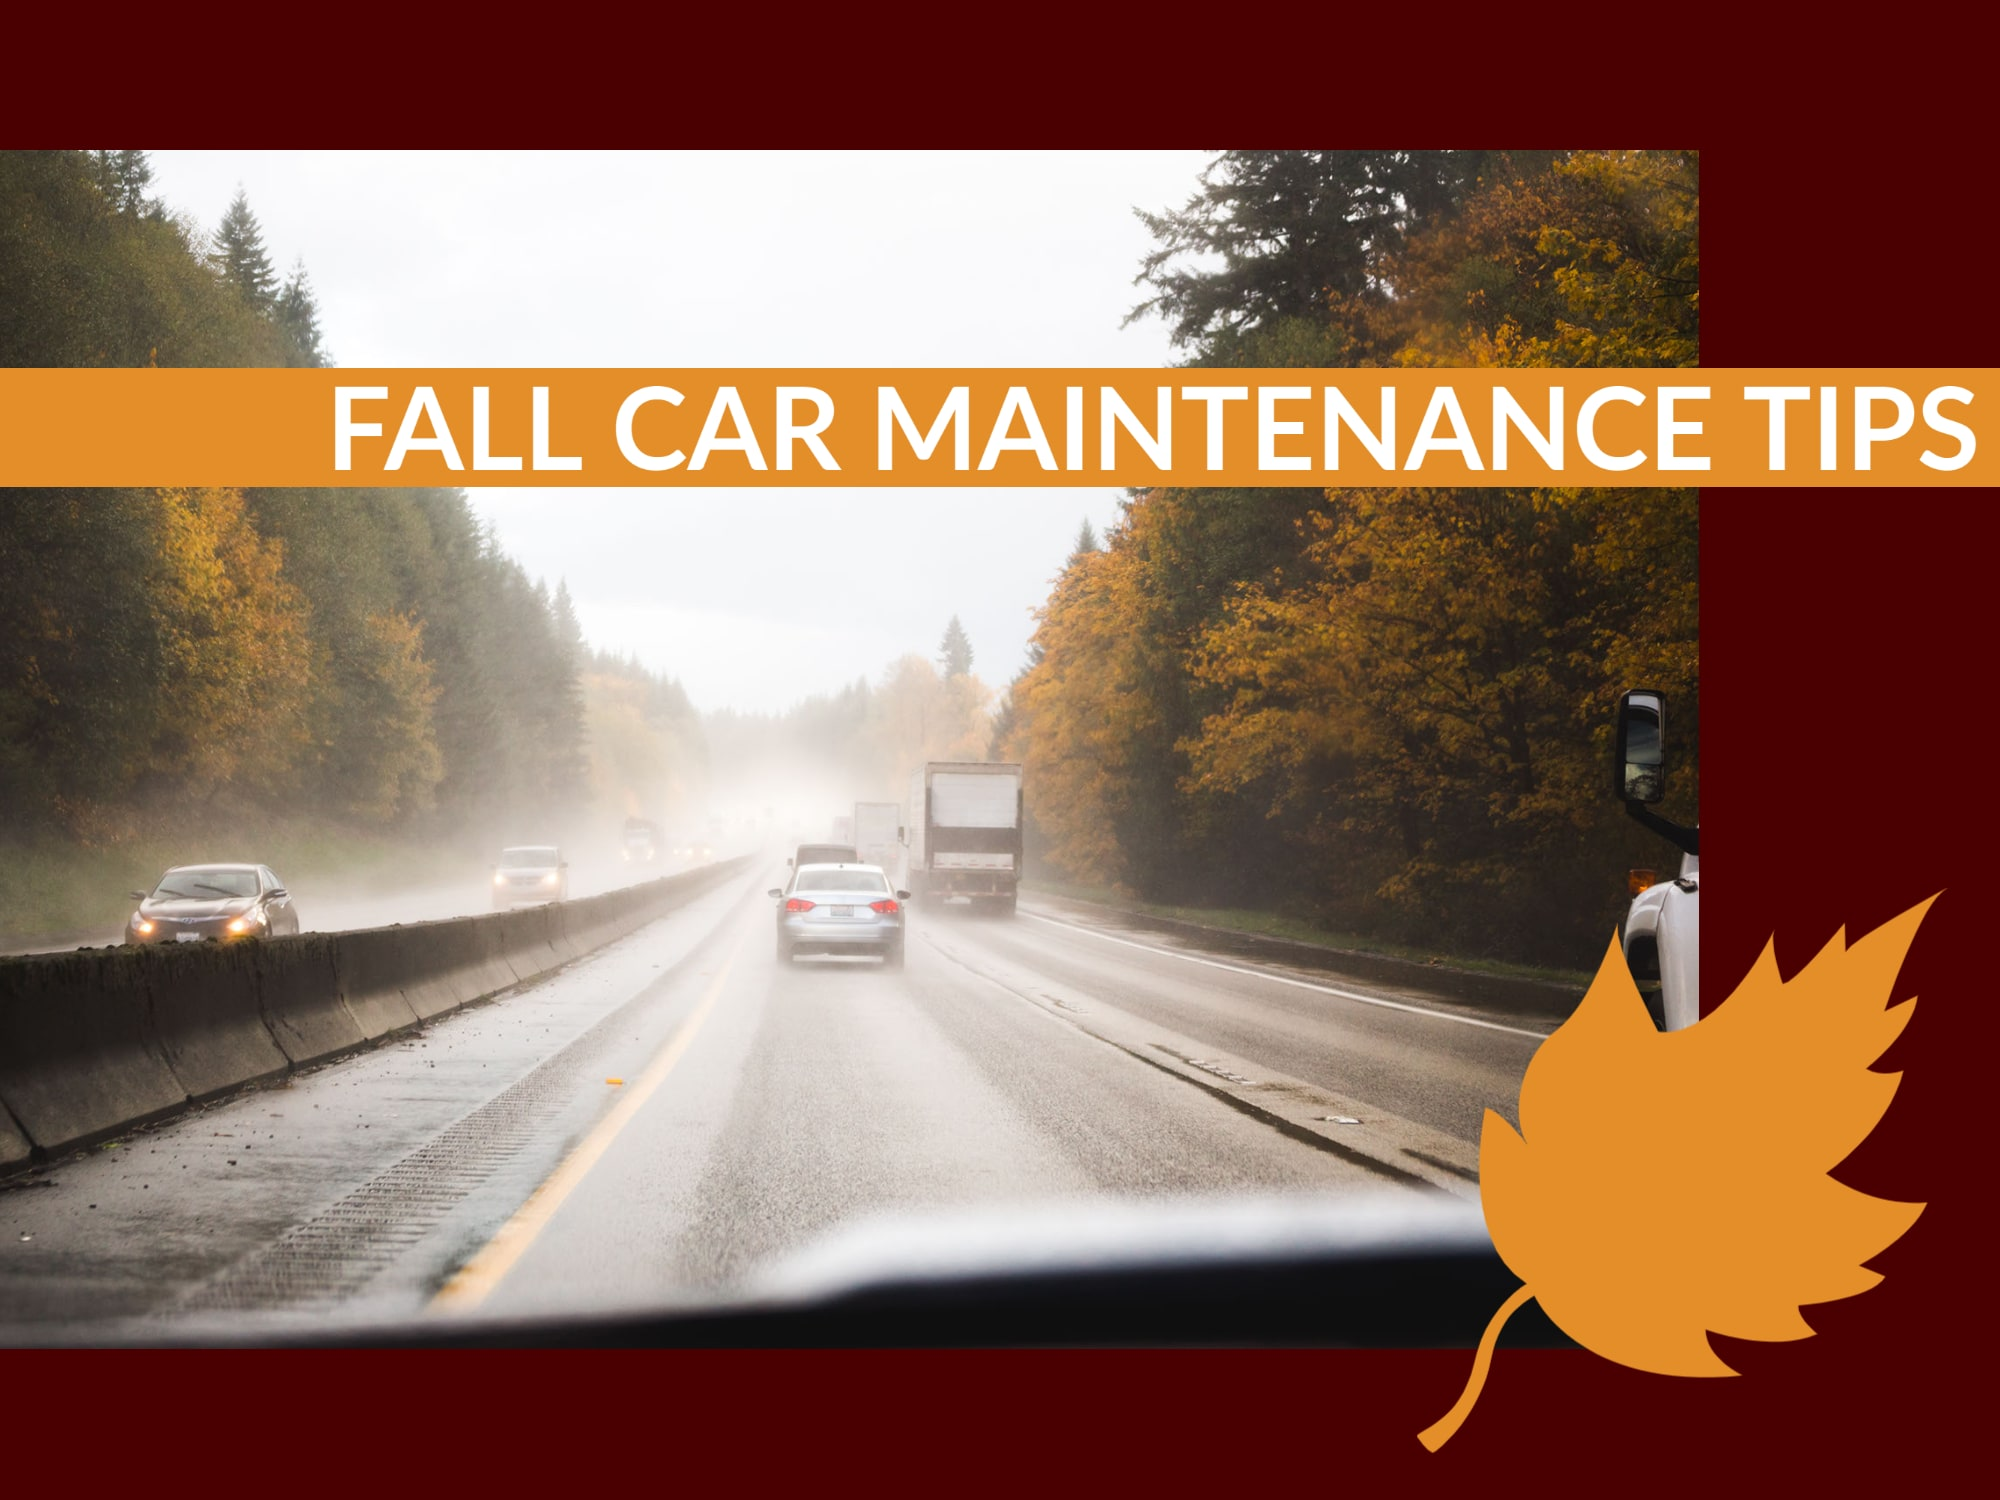 Driver's View of Driving down wet road in Fall season